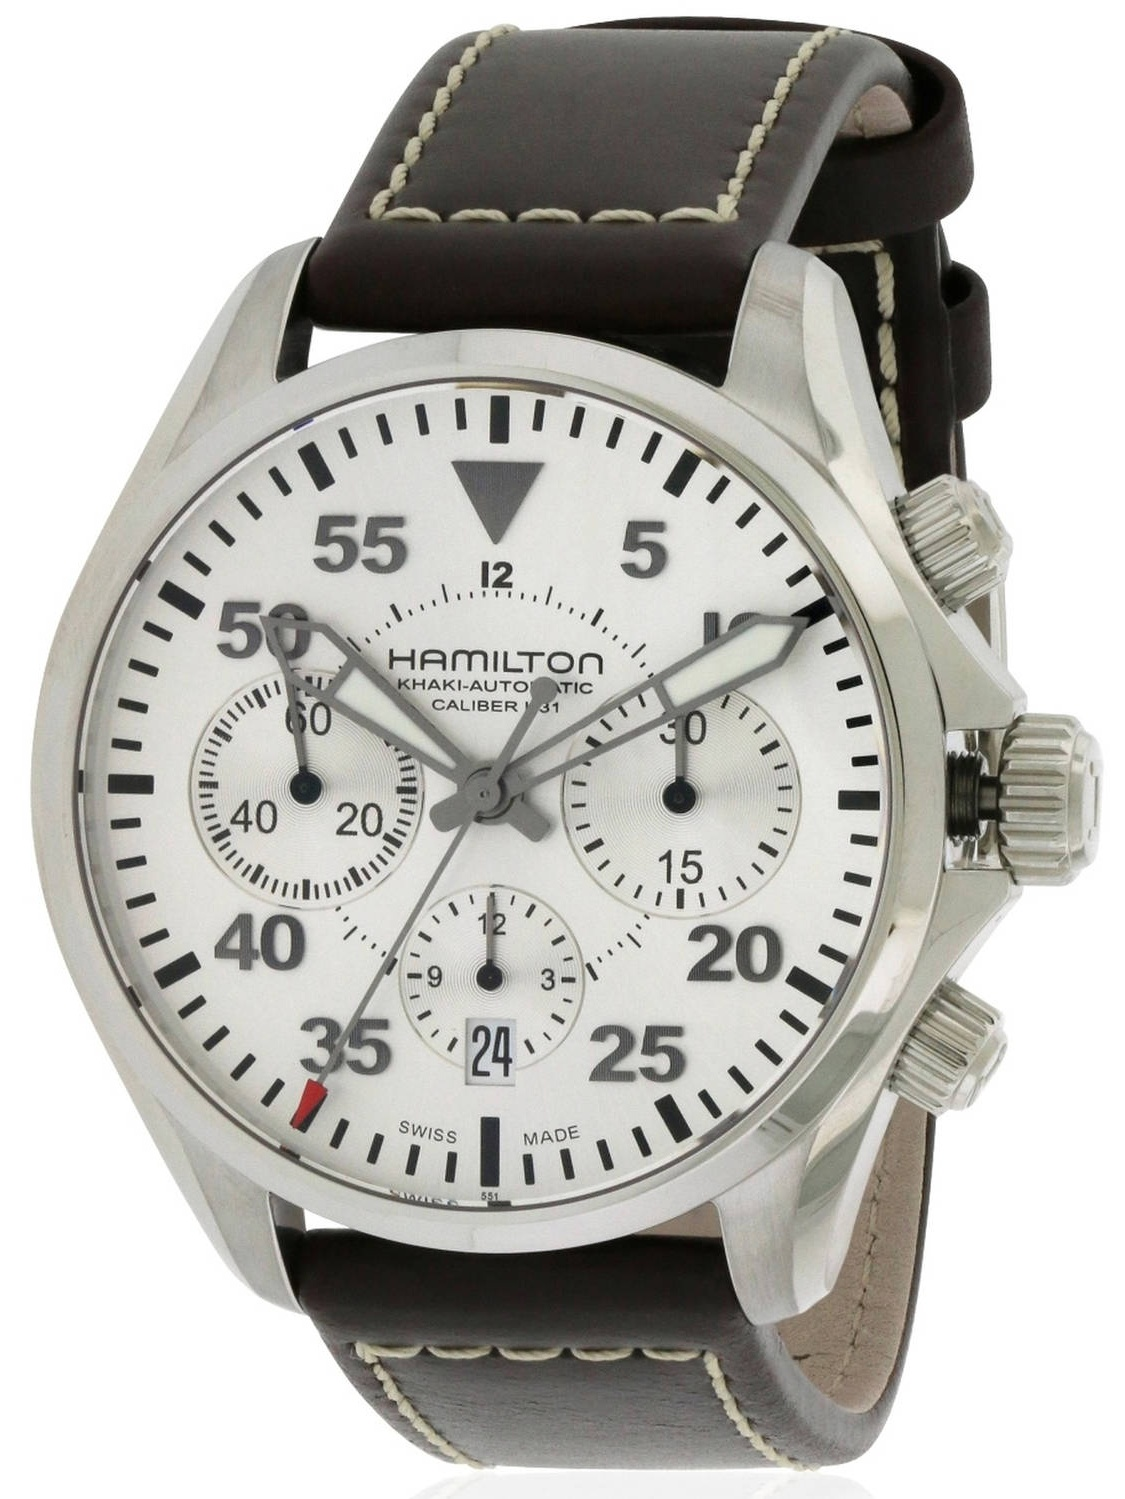 Hamilton Khaki Pilot Automatic Chronograph Leather Men's Watch, H64666555 by Hamilton